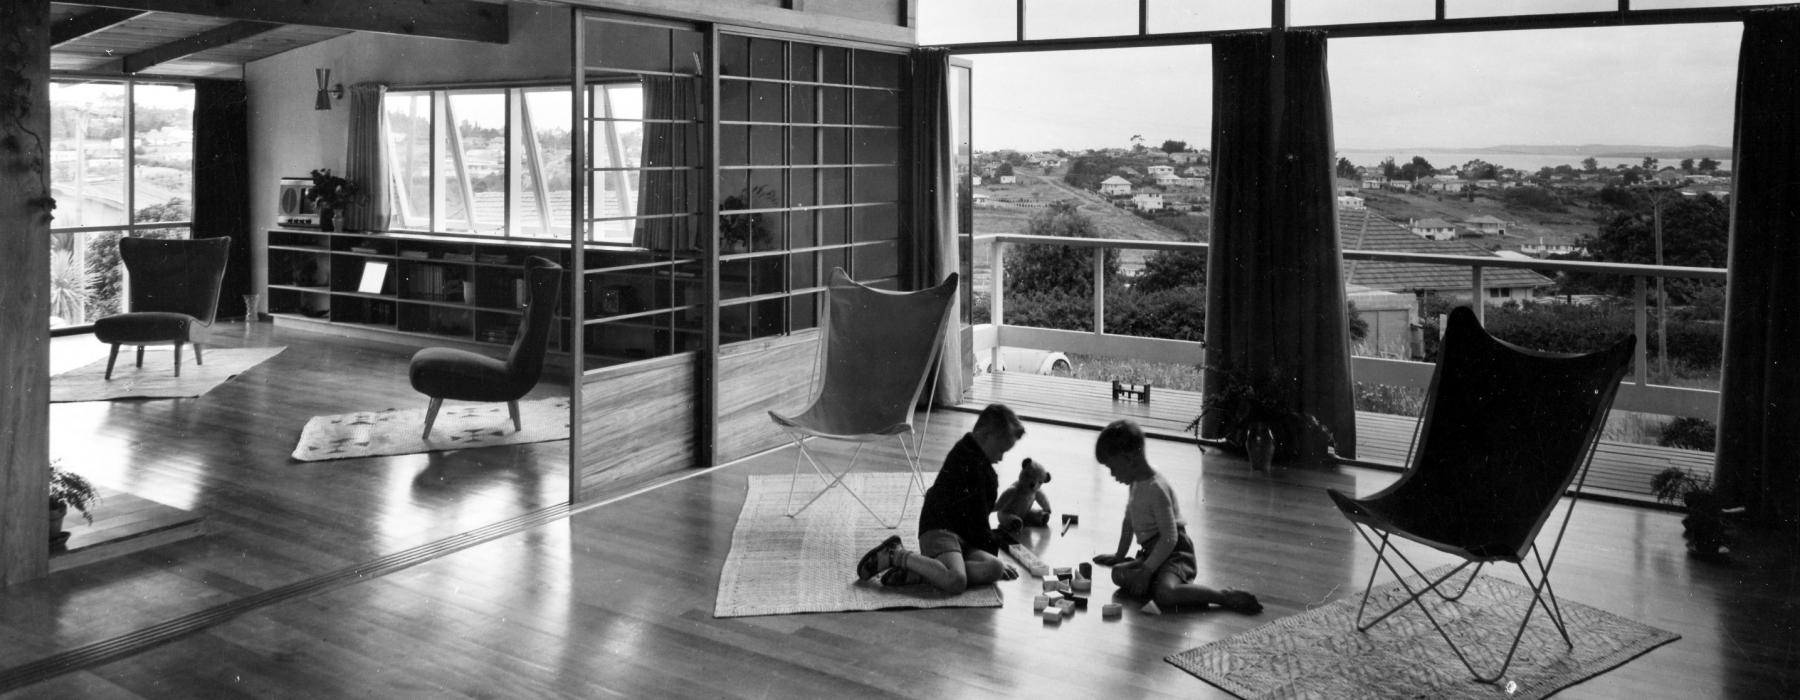 Black and white photo of two children playing on the floor of a large room with a view of other houses and the harbour